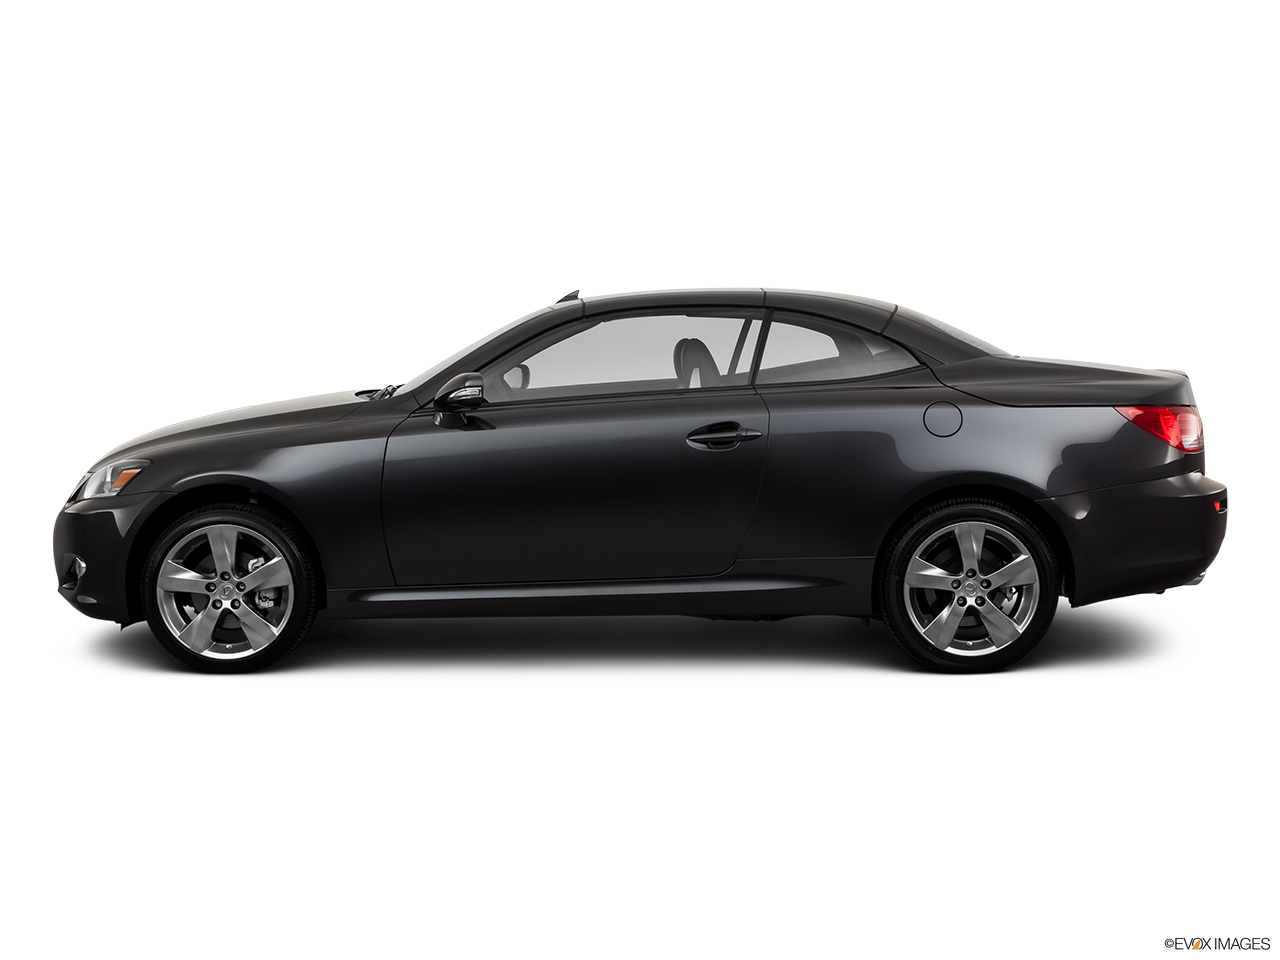 2011 Lexus IS 250C IS250C Drivers side profile, convertible top up (convertibles only).